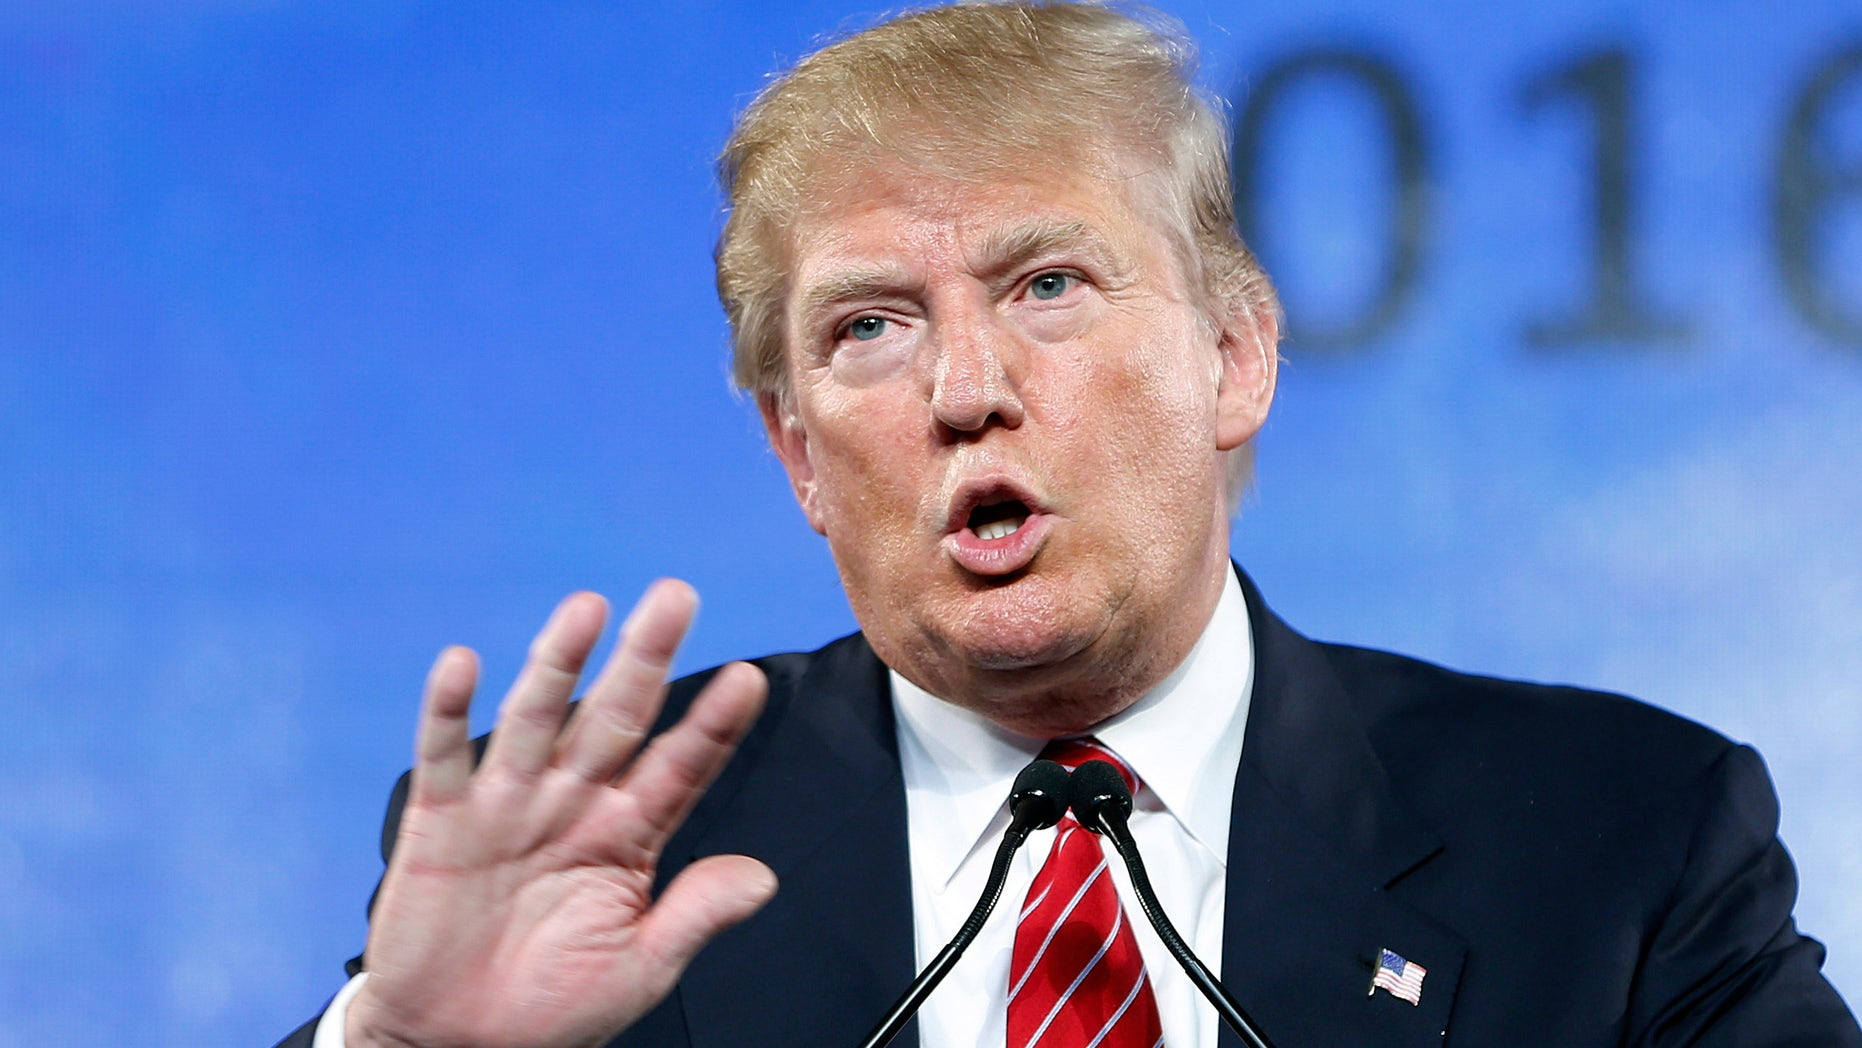 """FILE - In this July 11, 2015, file photo, Republican presidential candidate Donald Trump speaks at FreedomFest in Las Vegas. Trump criticized Sen. John McCain's military record at a conservative forum Saturday, saying the party's 2008 nominee and former prisoner of war was a """"war hero because he was captured. I like people who weren't captured."""" McCain spent 20 years in the Navy, a quarter of it in a Vietnamese prisoner of war camp after his jet was shot down over Hanoi during a bombing mission Oct. 26, 1967.  (AP Photo/John Locher, File)"""